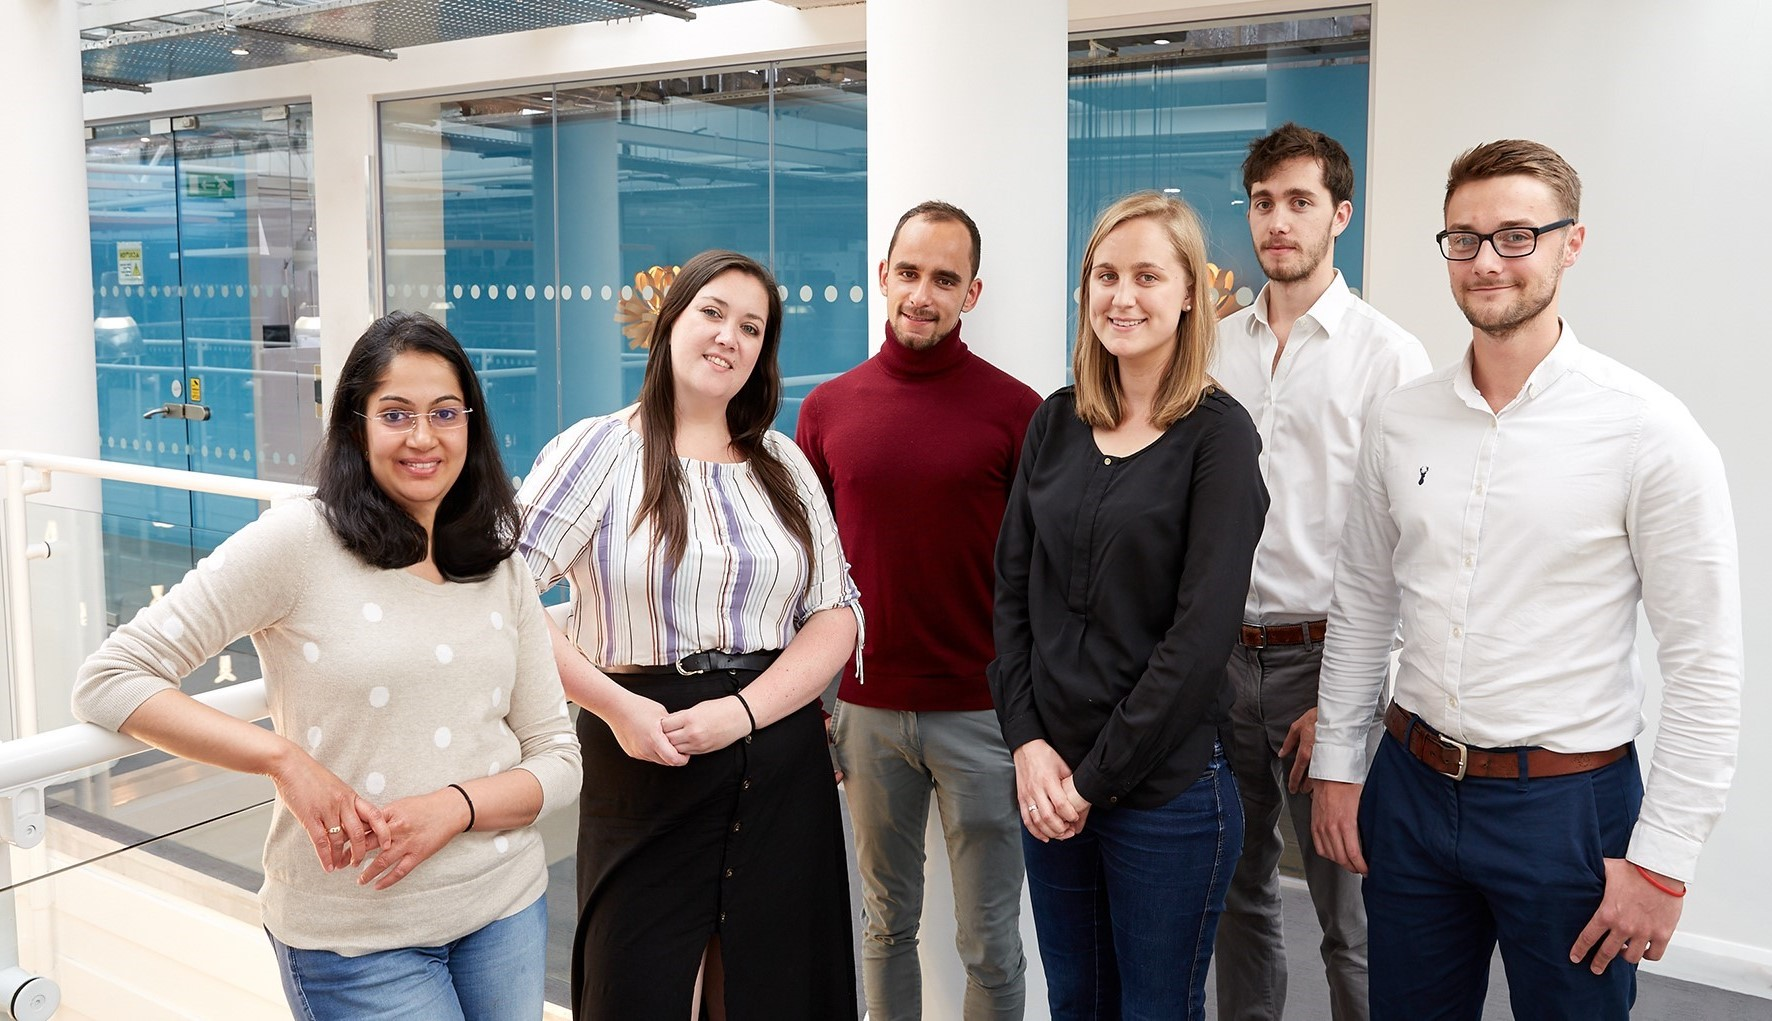 90TEN continues to expand its medical education team with six new hires